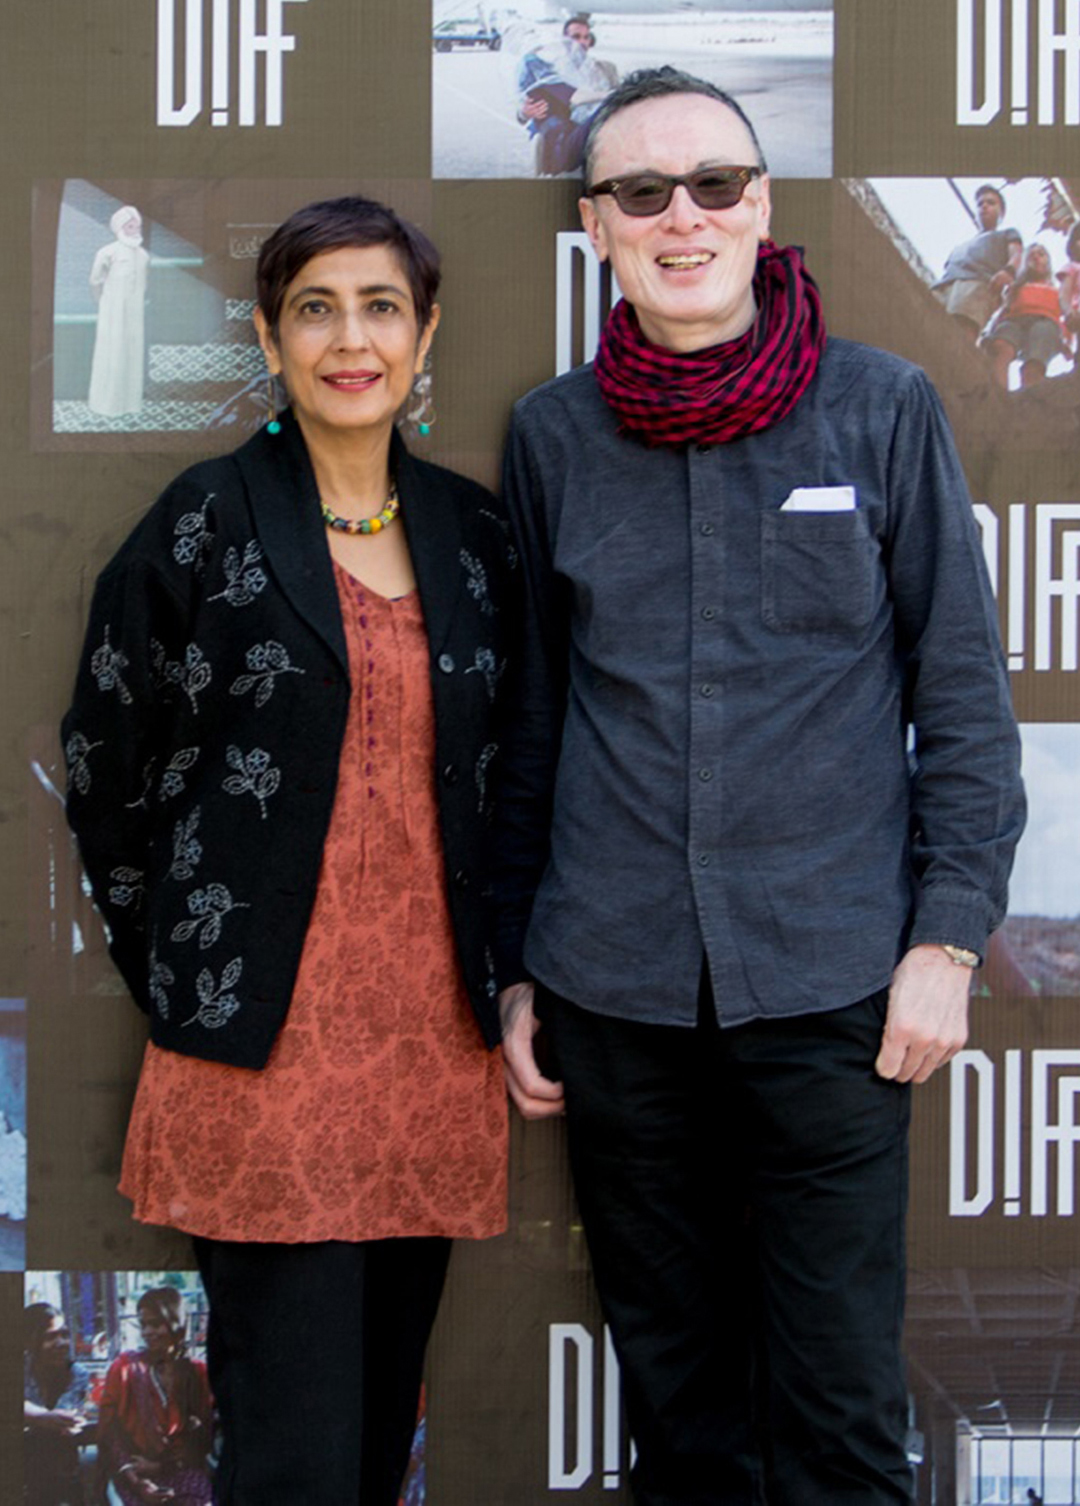 Ritu Sarin and Tenzing Sonam on Dharamshala International Film Festival